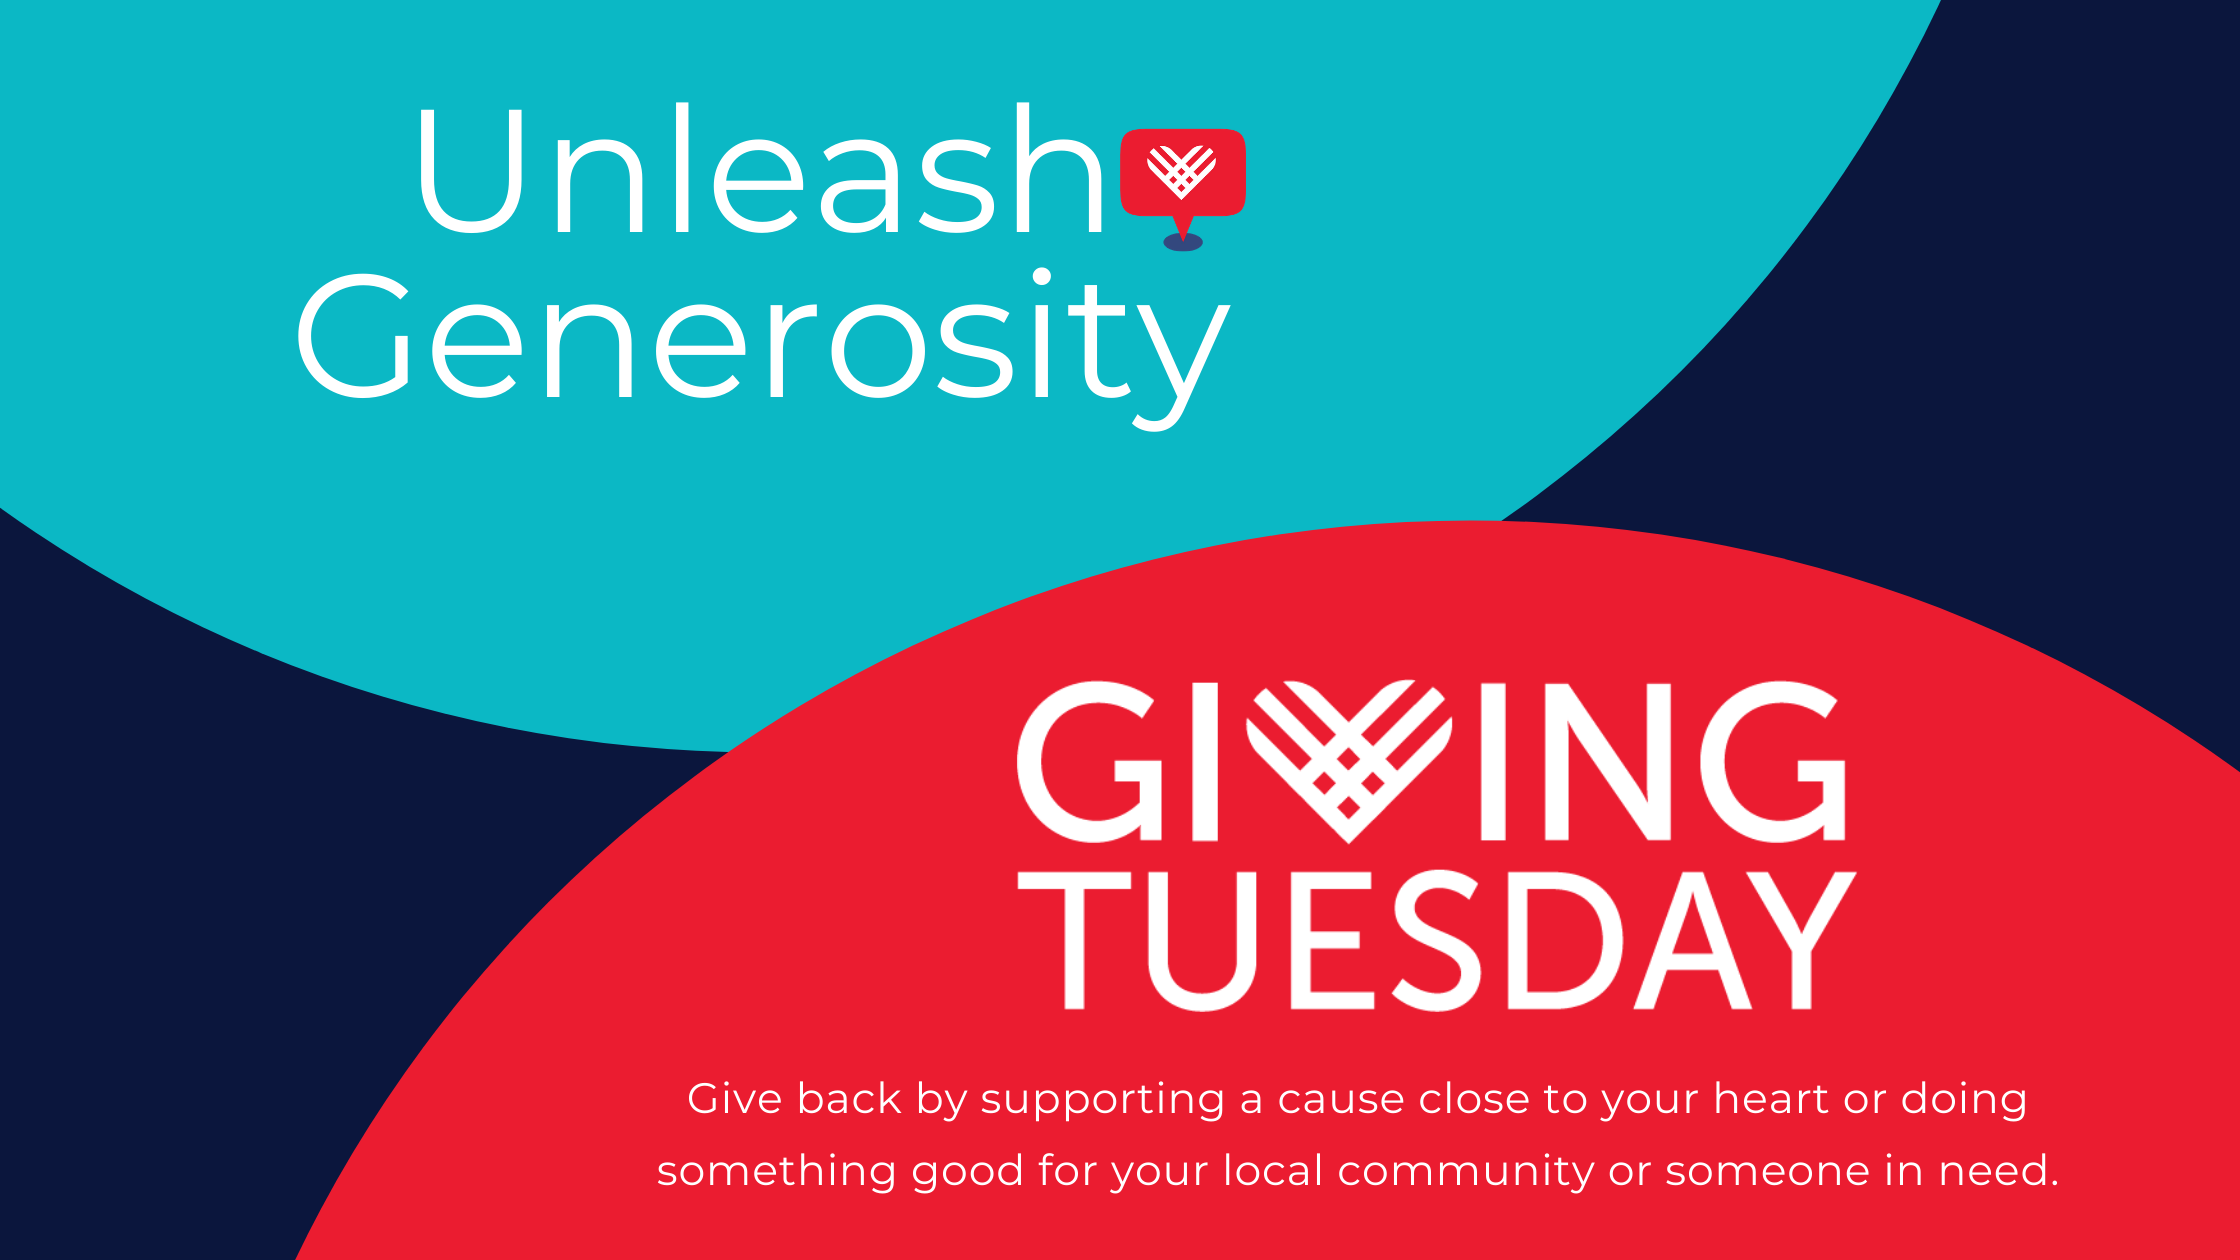 How Can I Participate in #GivingTuesday as a Small Business?